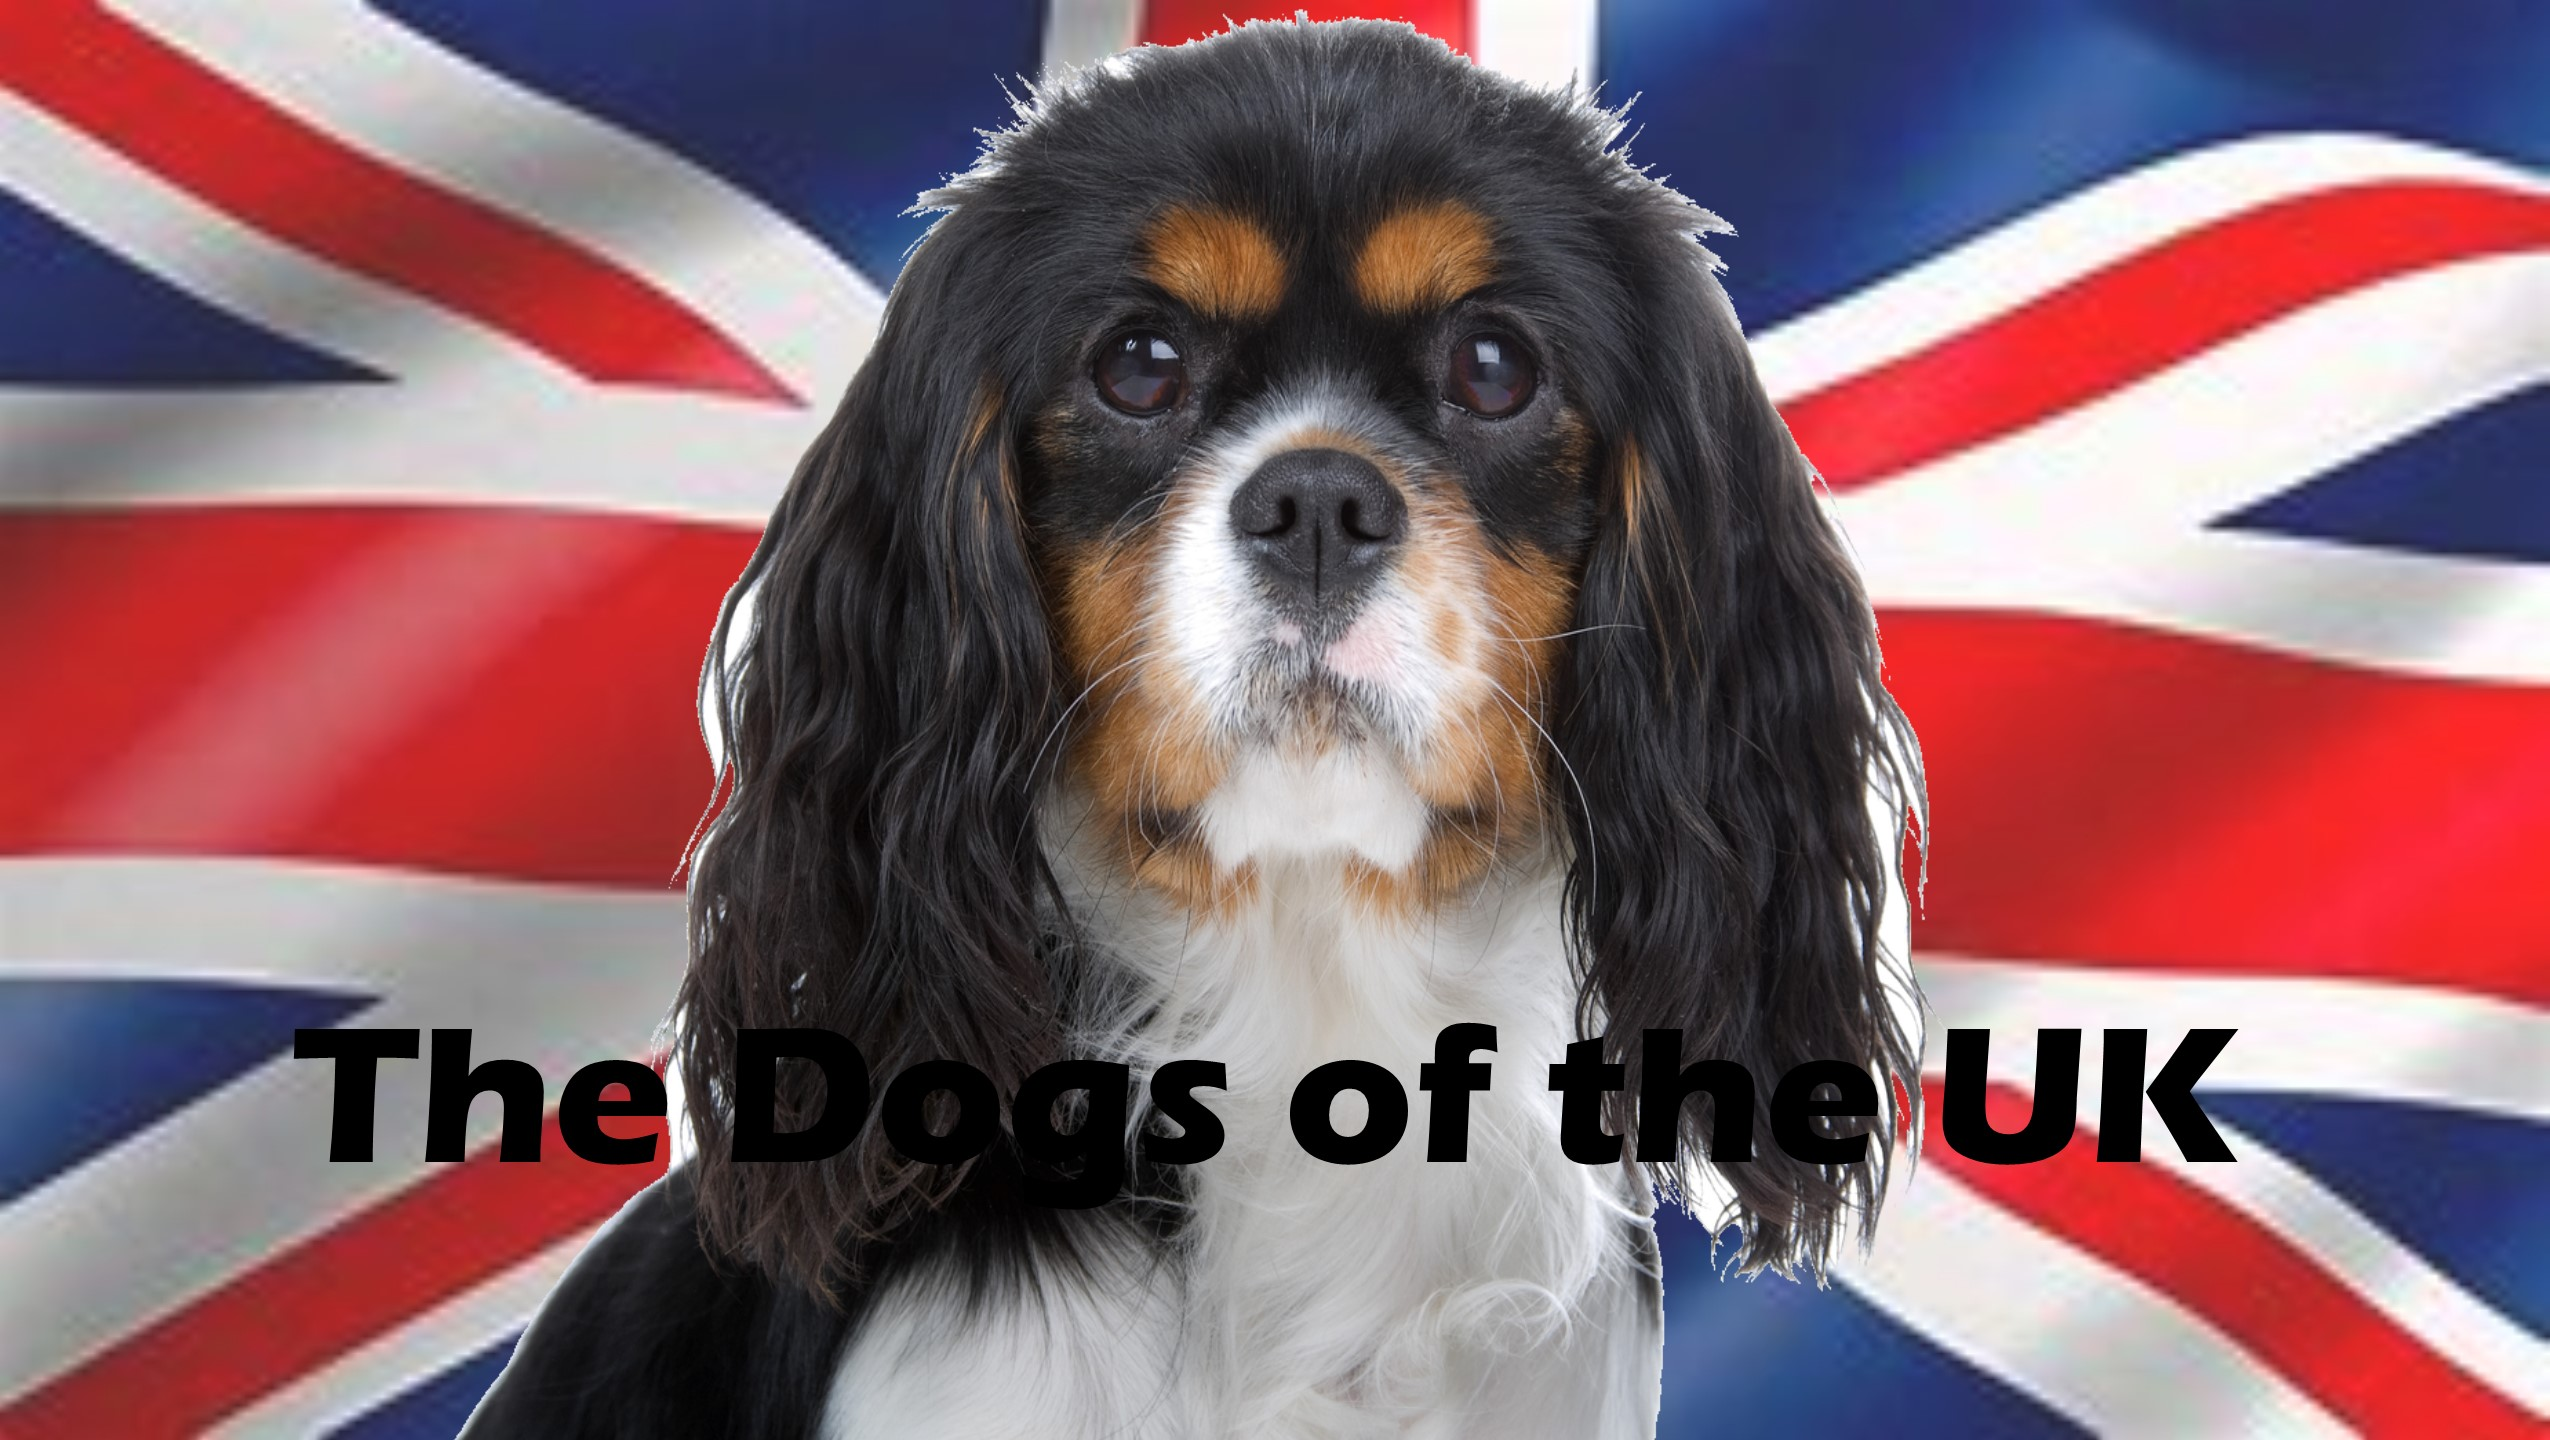 Dogs of the UK